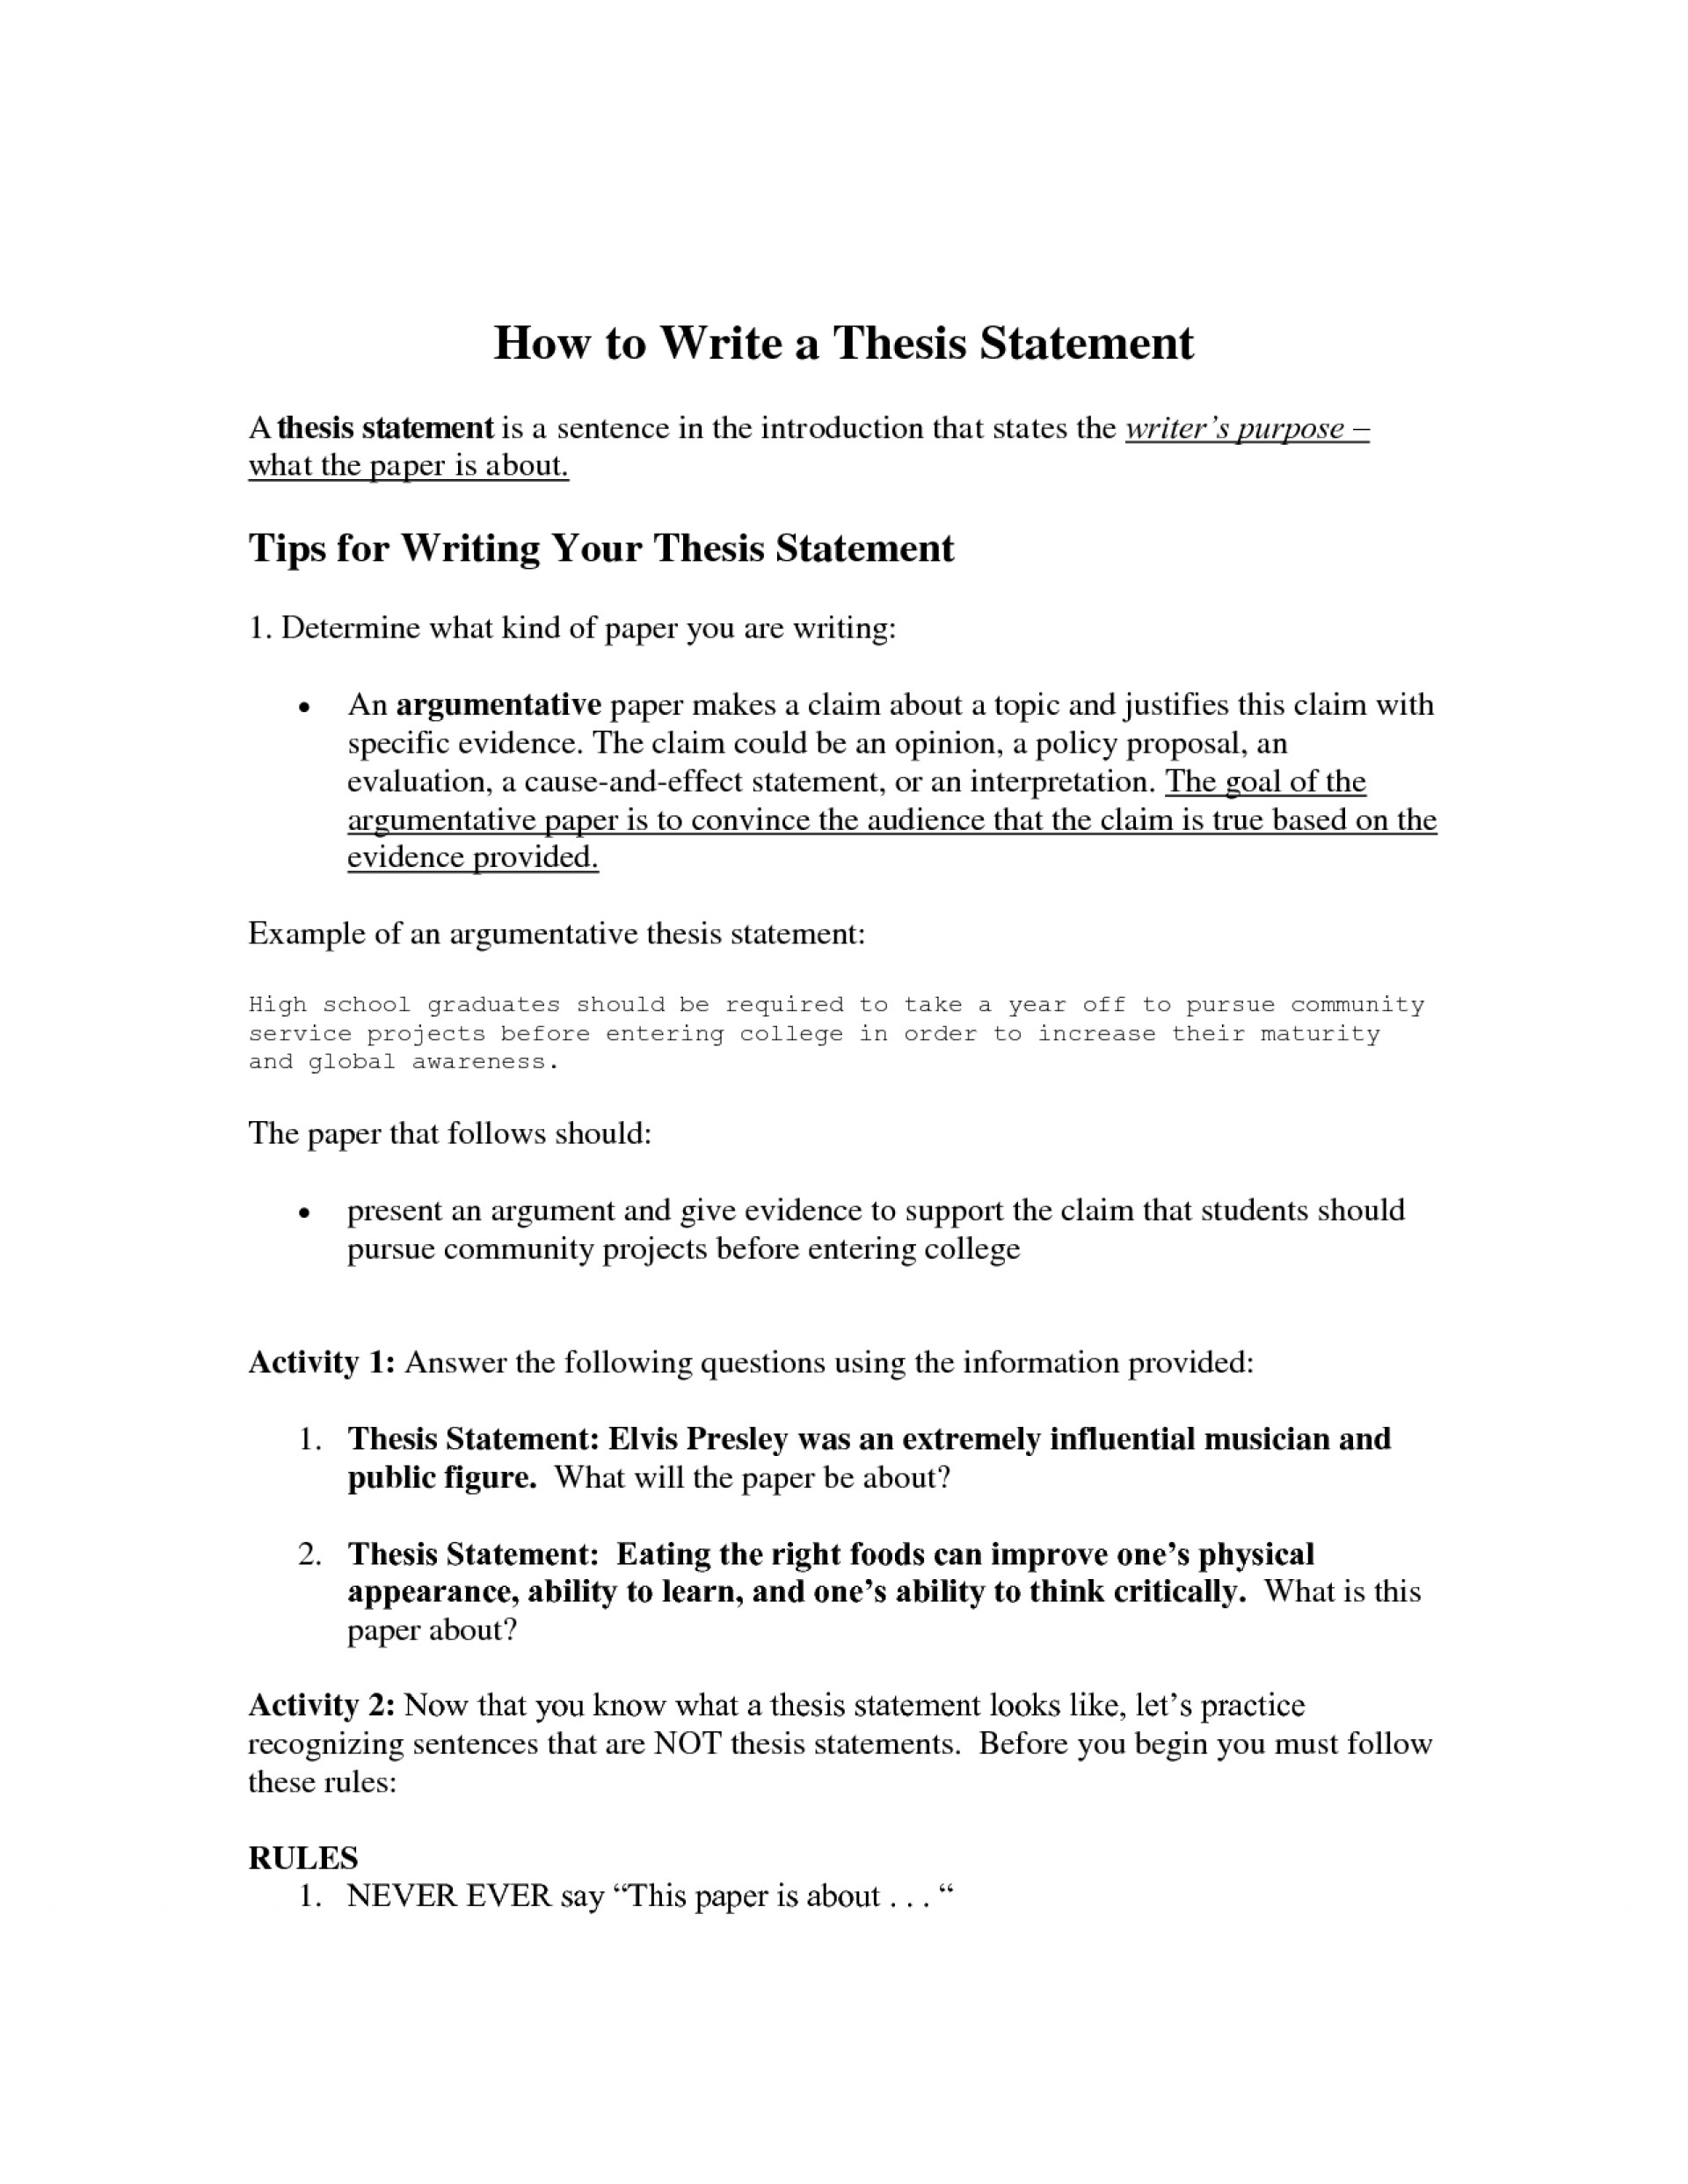 014 How To Write Thesis Statement For An Essay Statements Worksheets 488564 Frightening A Do You Informative Step By Argumentative 1920